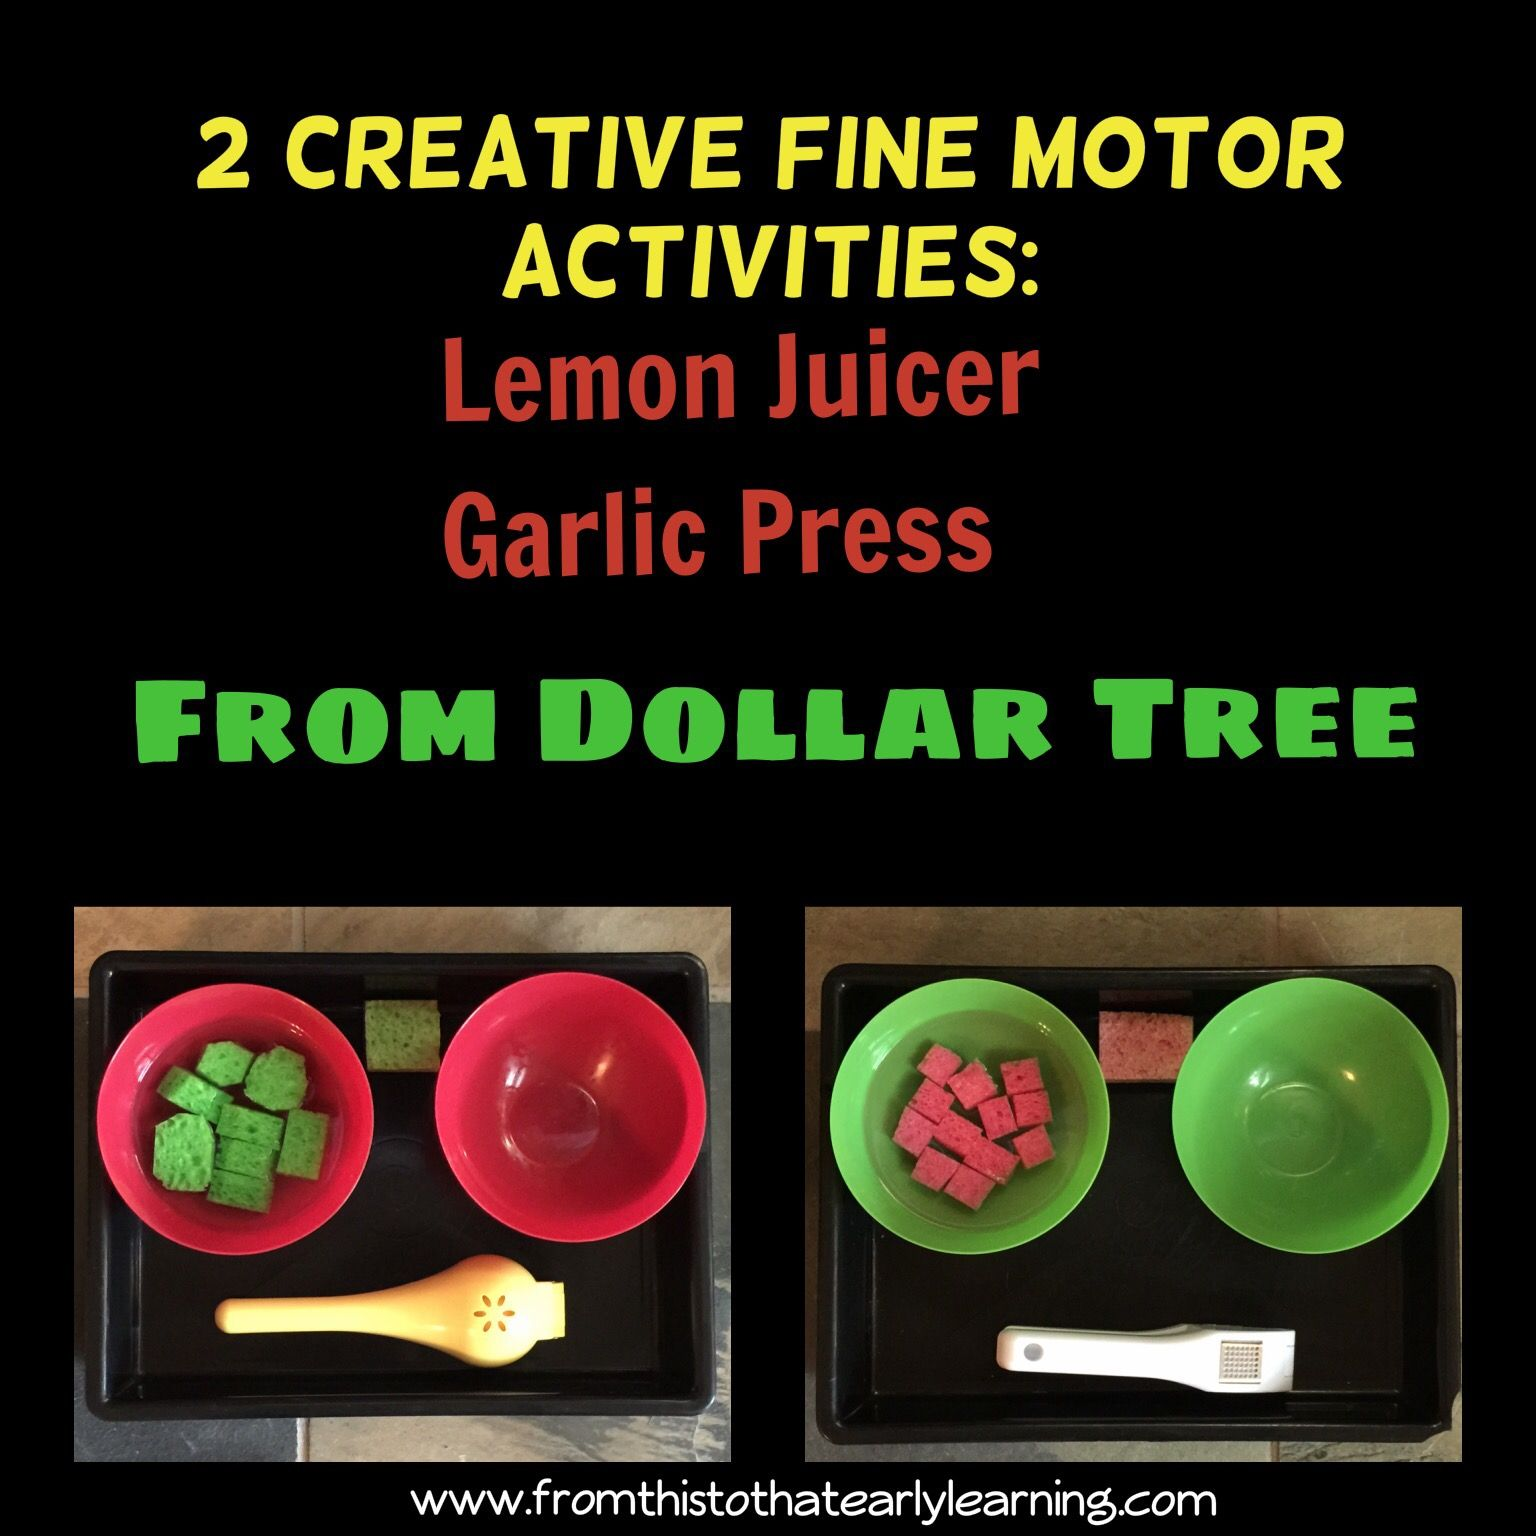 2 Creative Fine Motor Activities From Dollar Tree | From